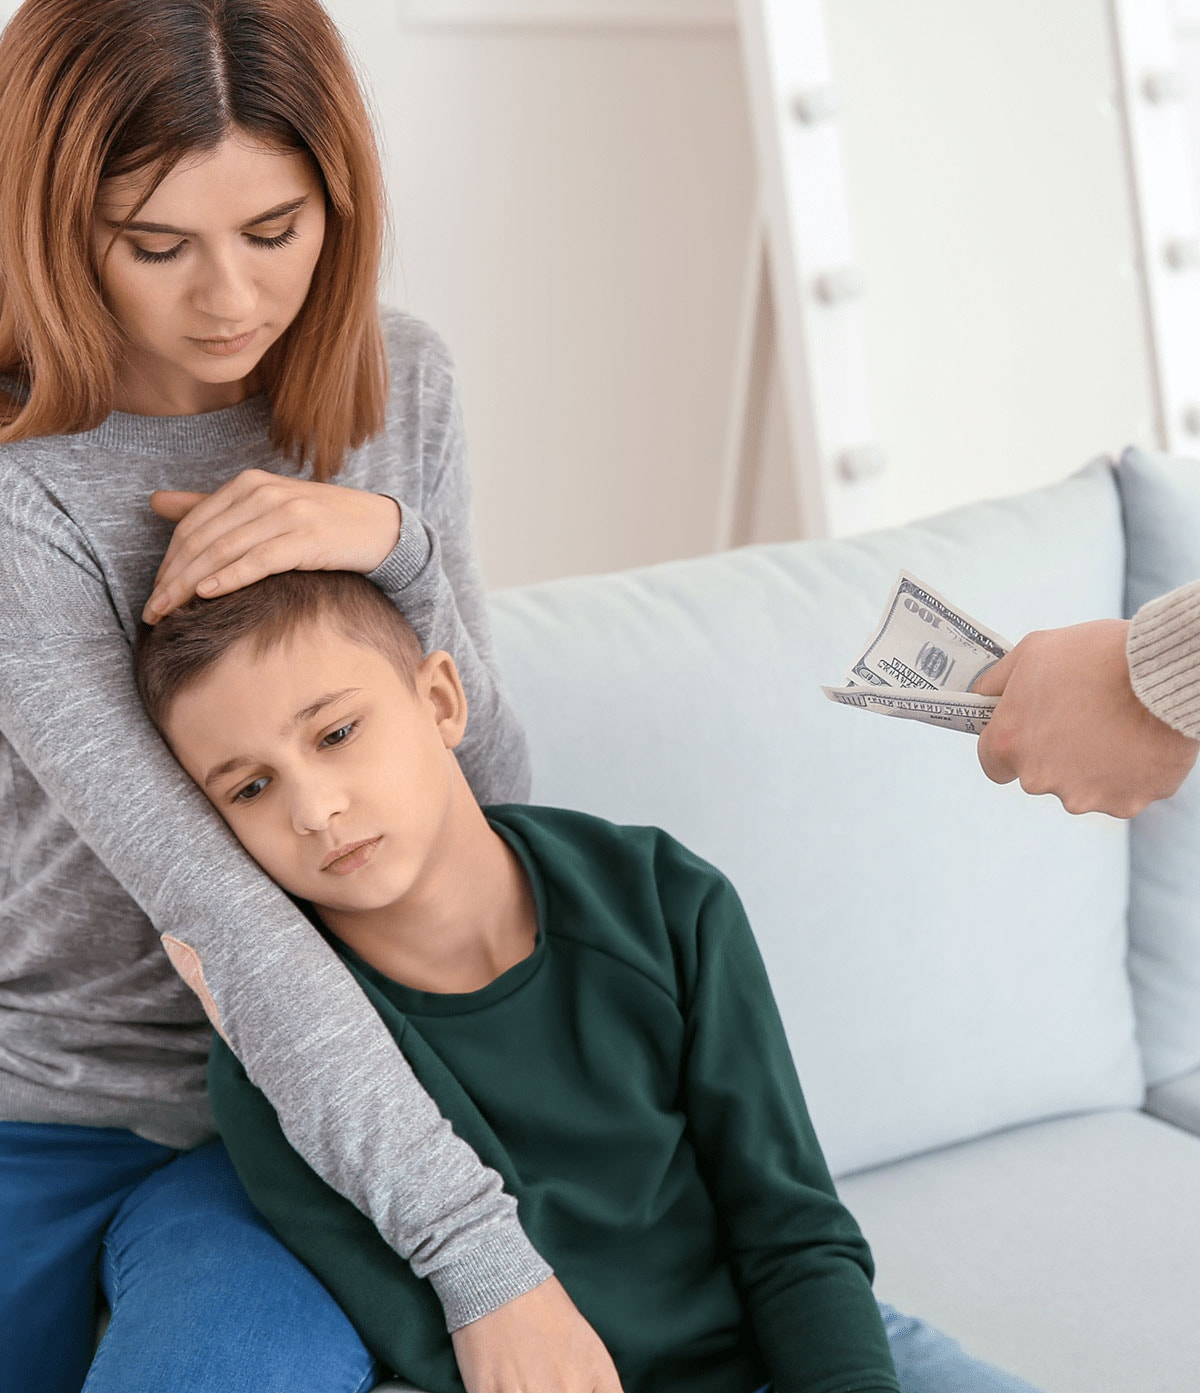 mother and child receiving alimony money